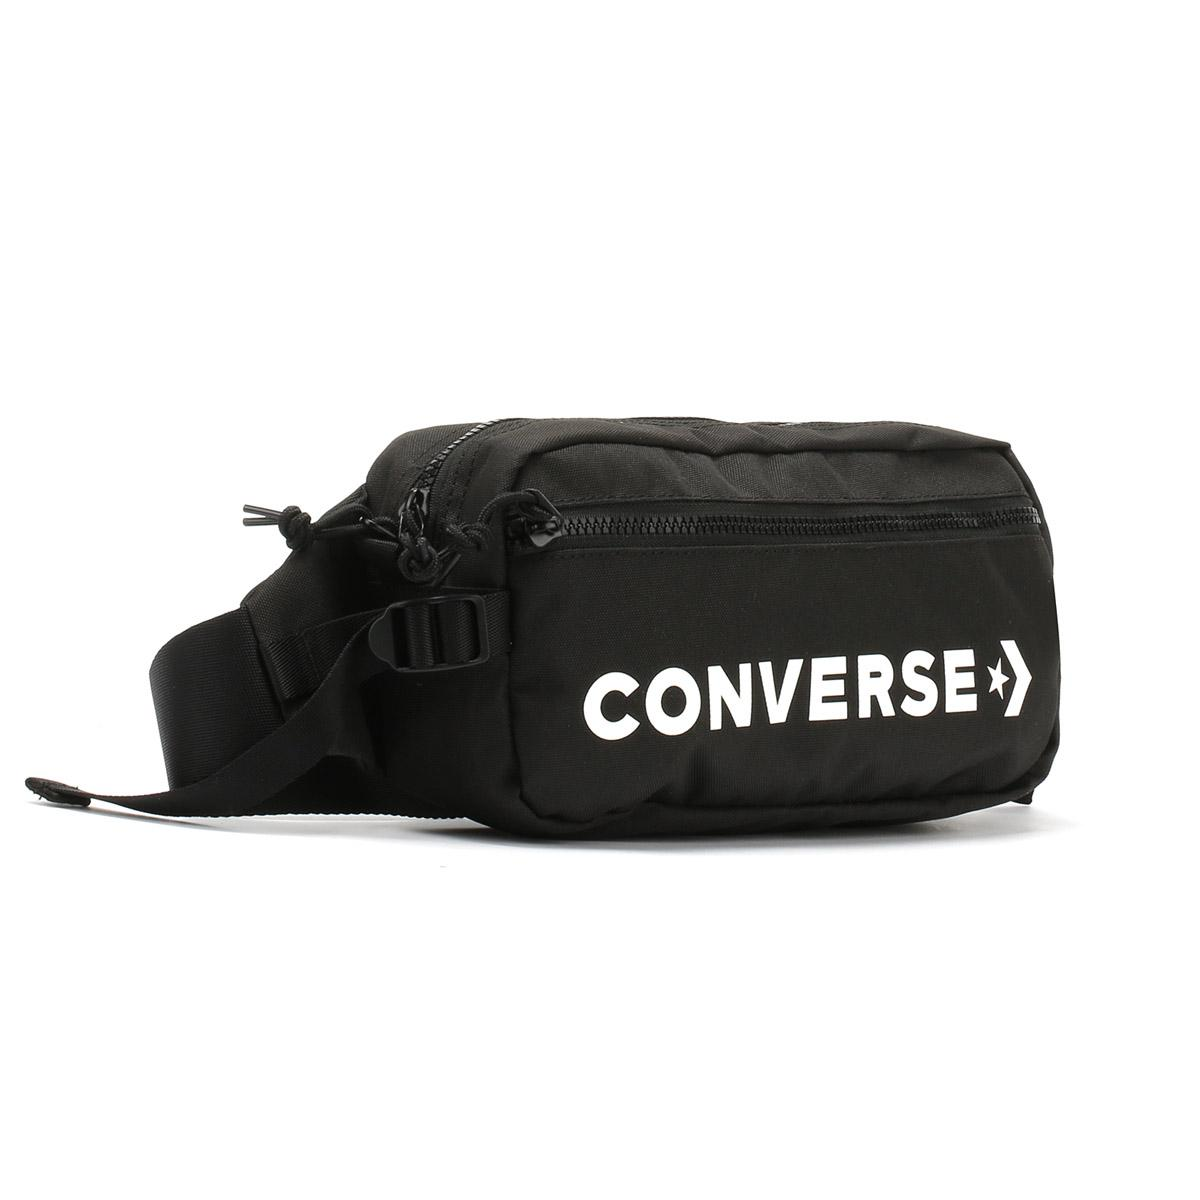 Converse Black   White Fast Pack Sling Bag in Black for Men - Lyst 2848002f29777